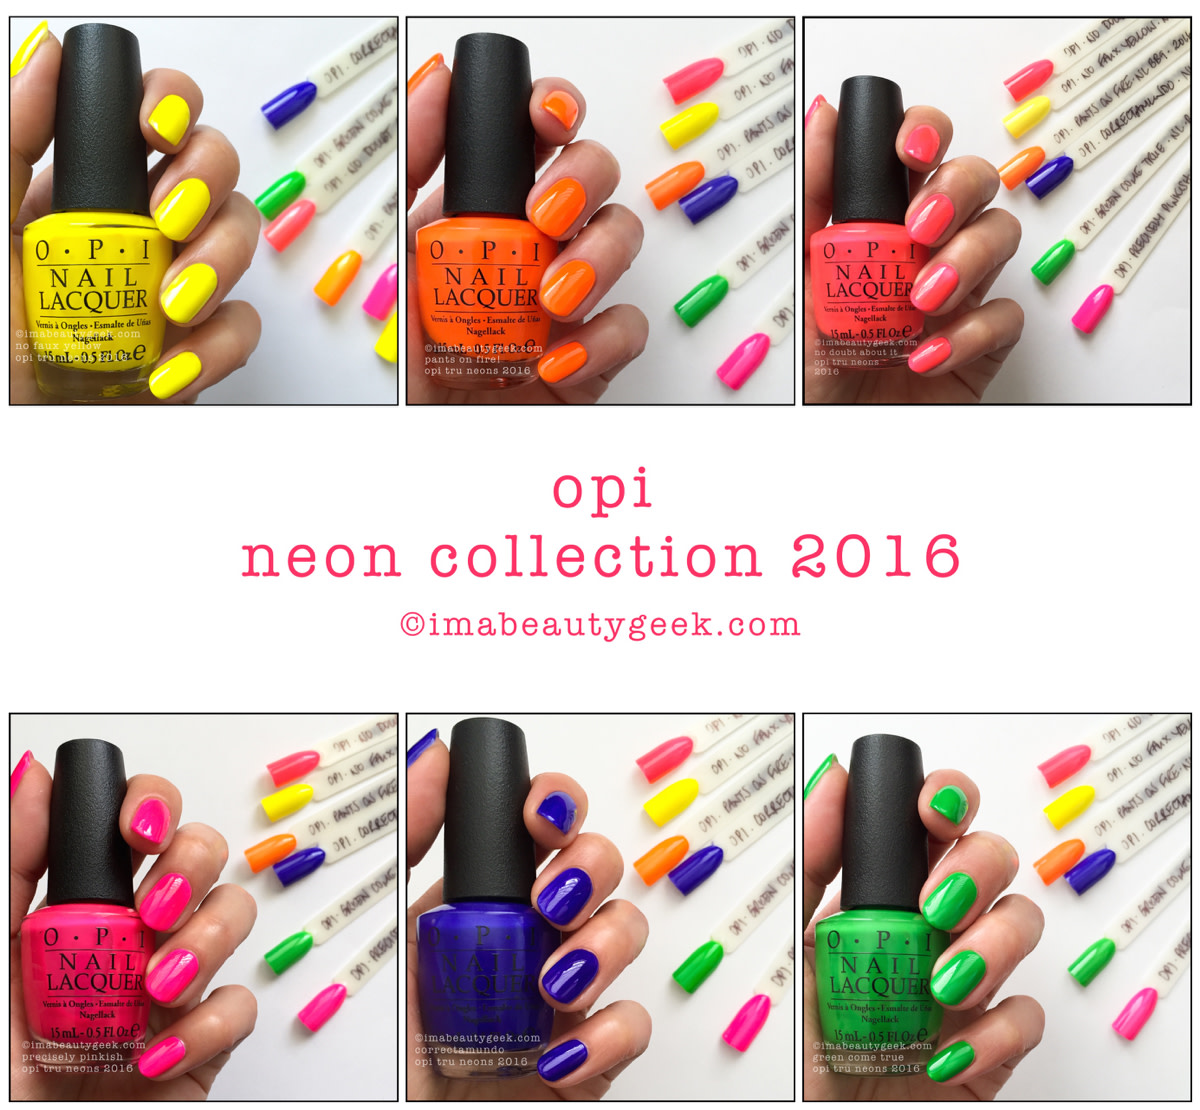 OPI Neon Collection 2016_OPI Tru Neons 2016 Swatches Revies - Version 2